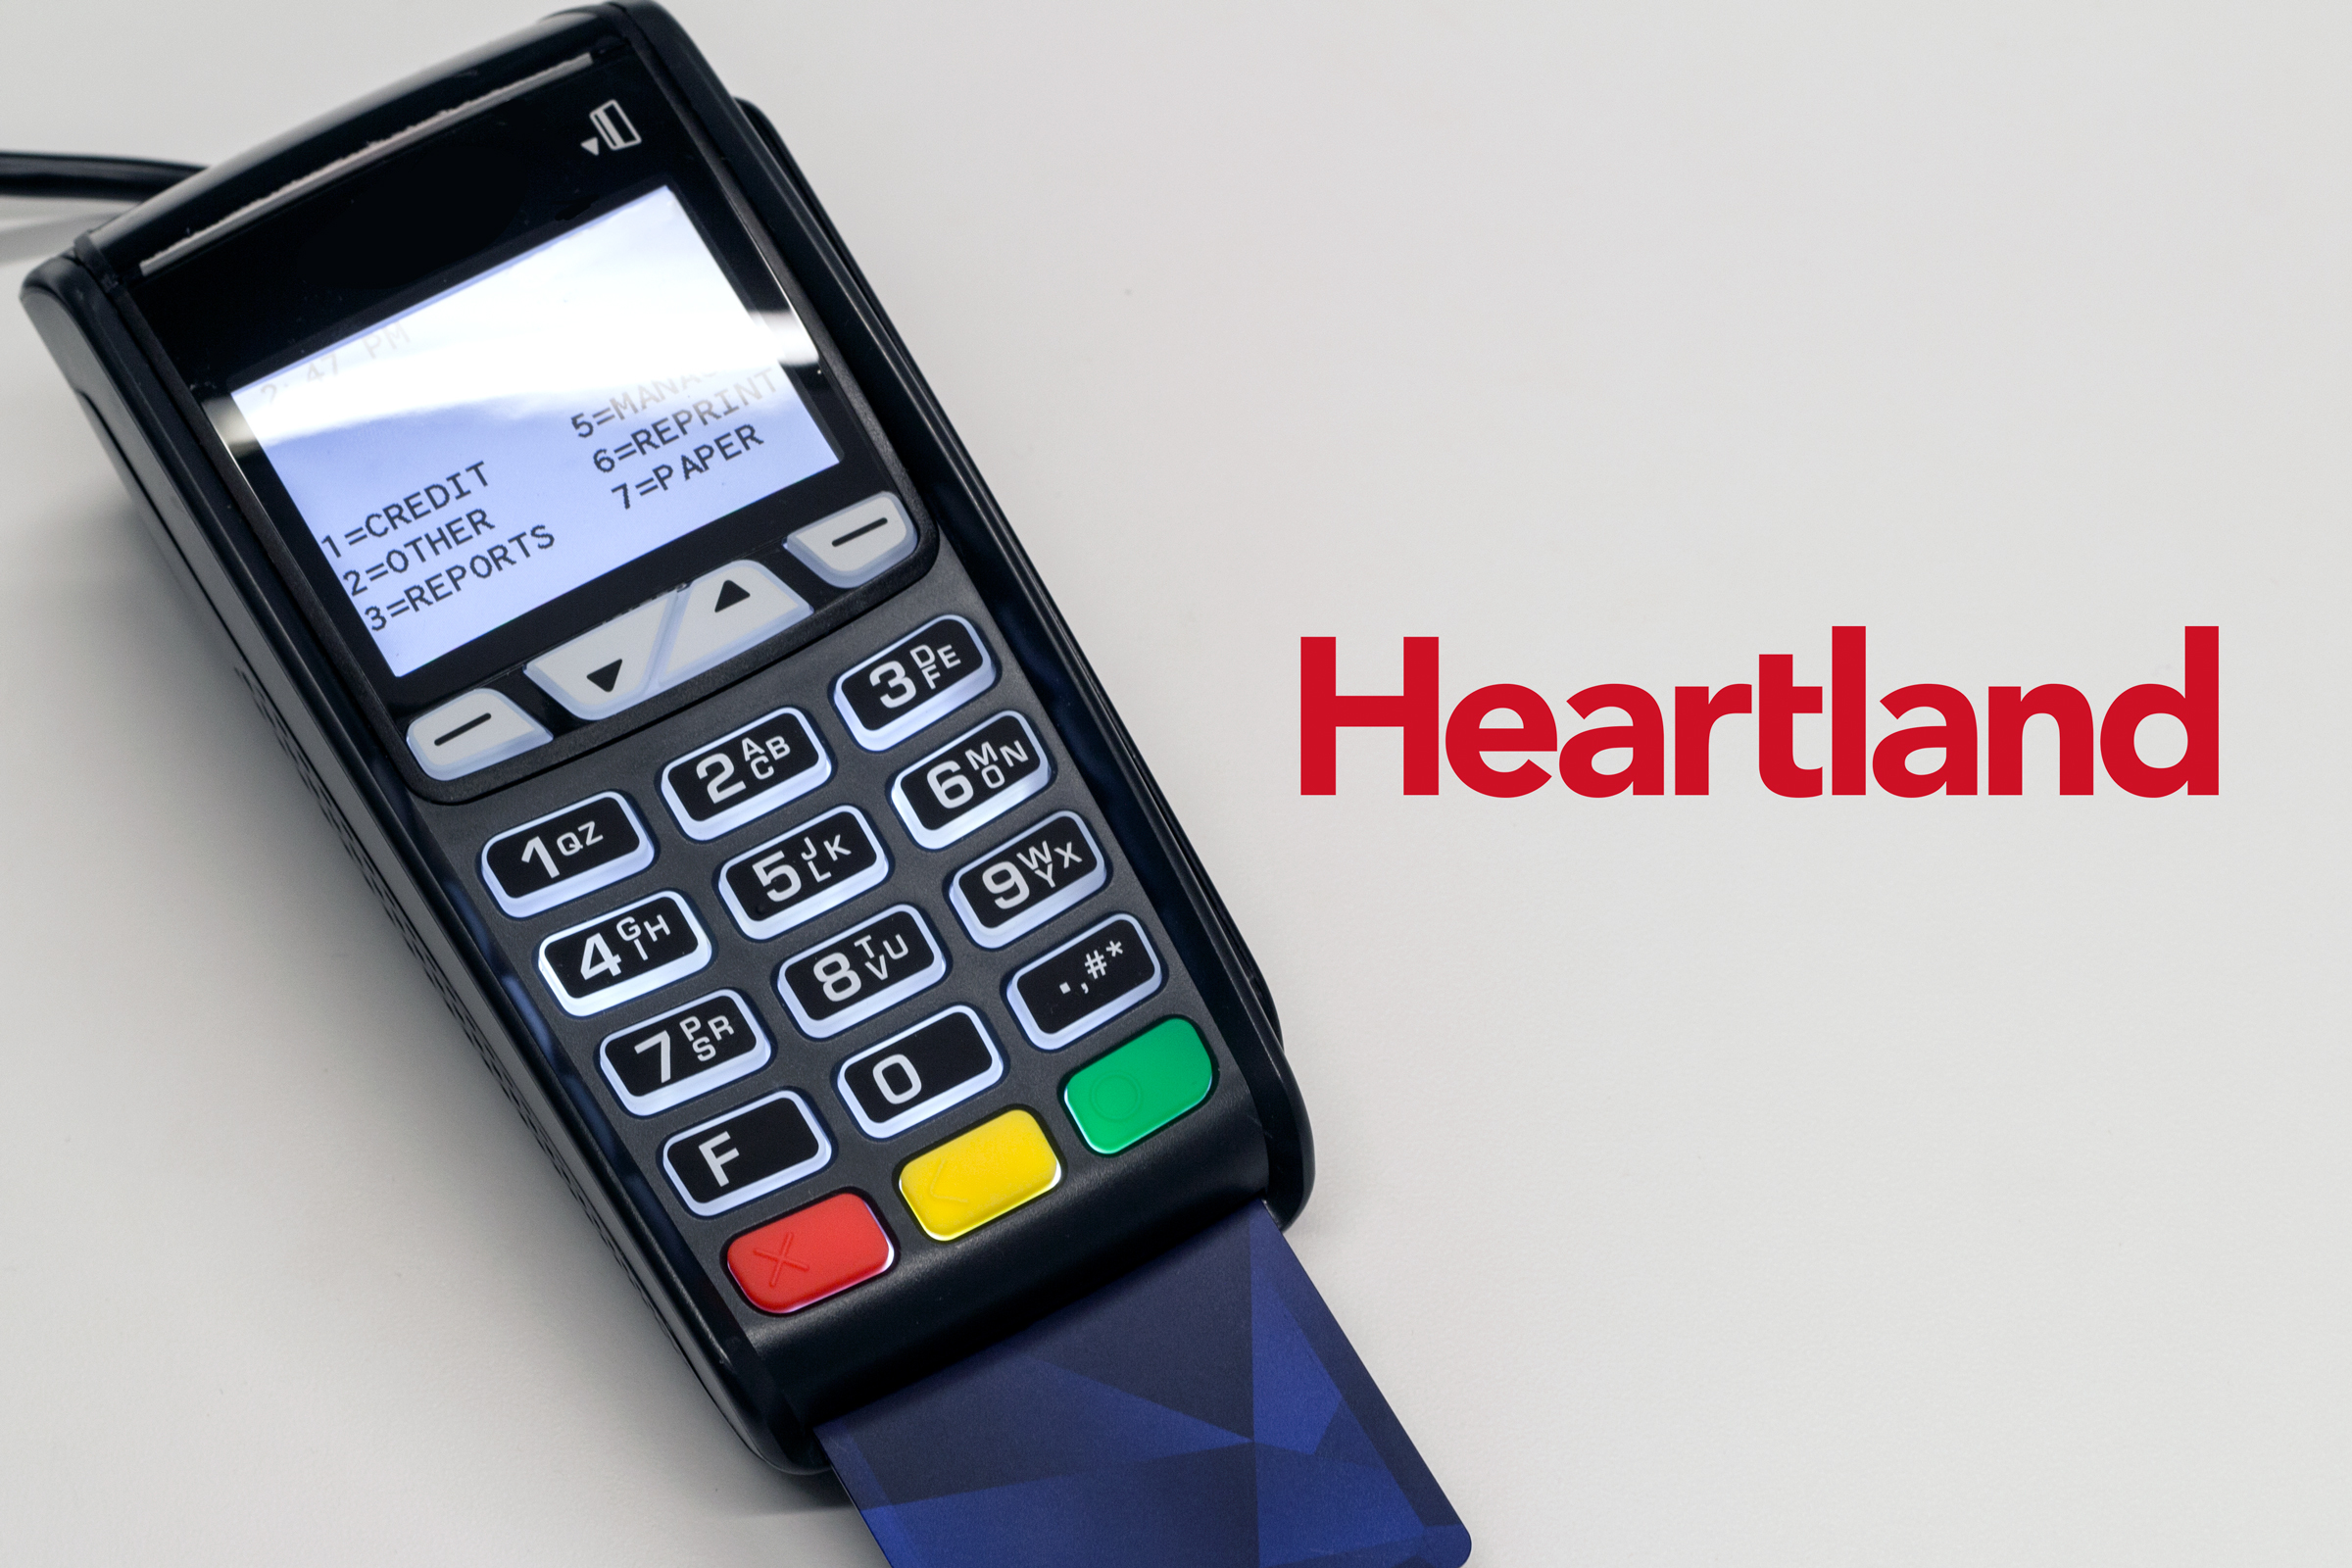 heartland first to offer prehensive merchant breach warranty